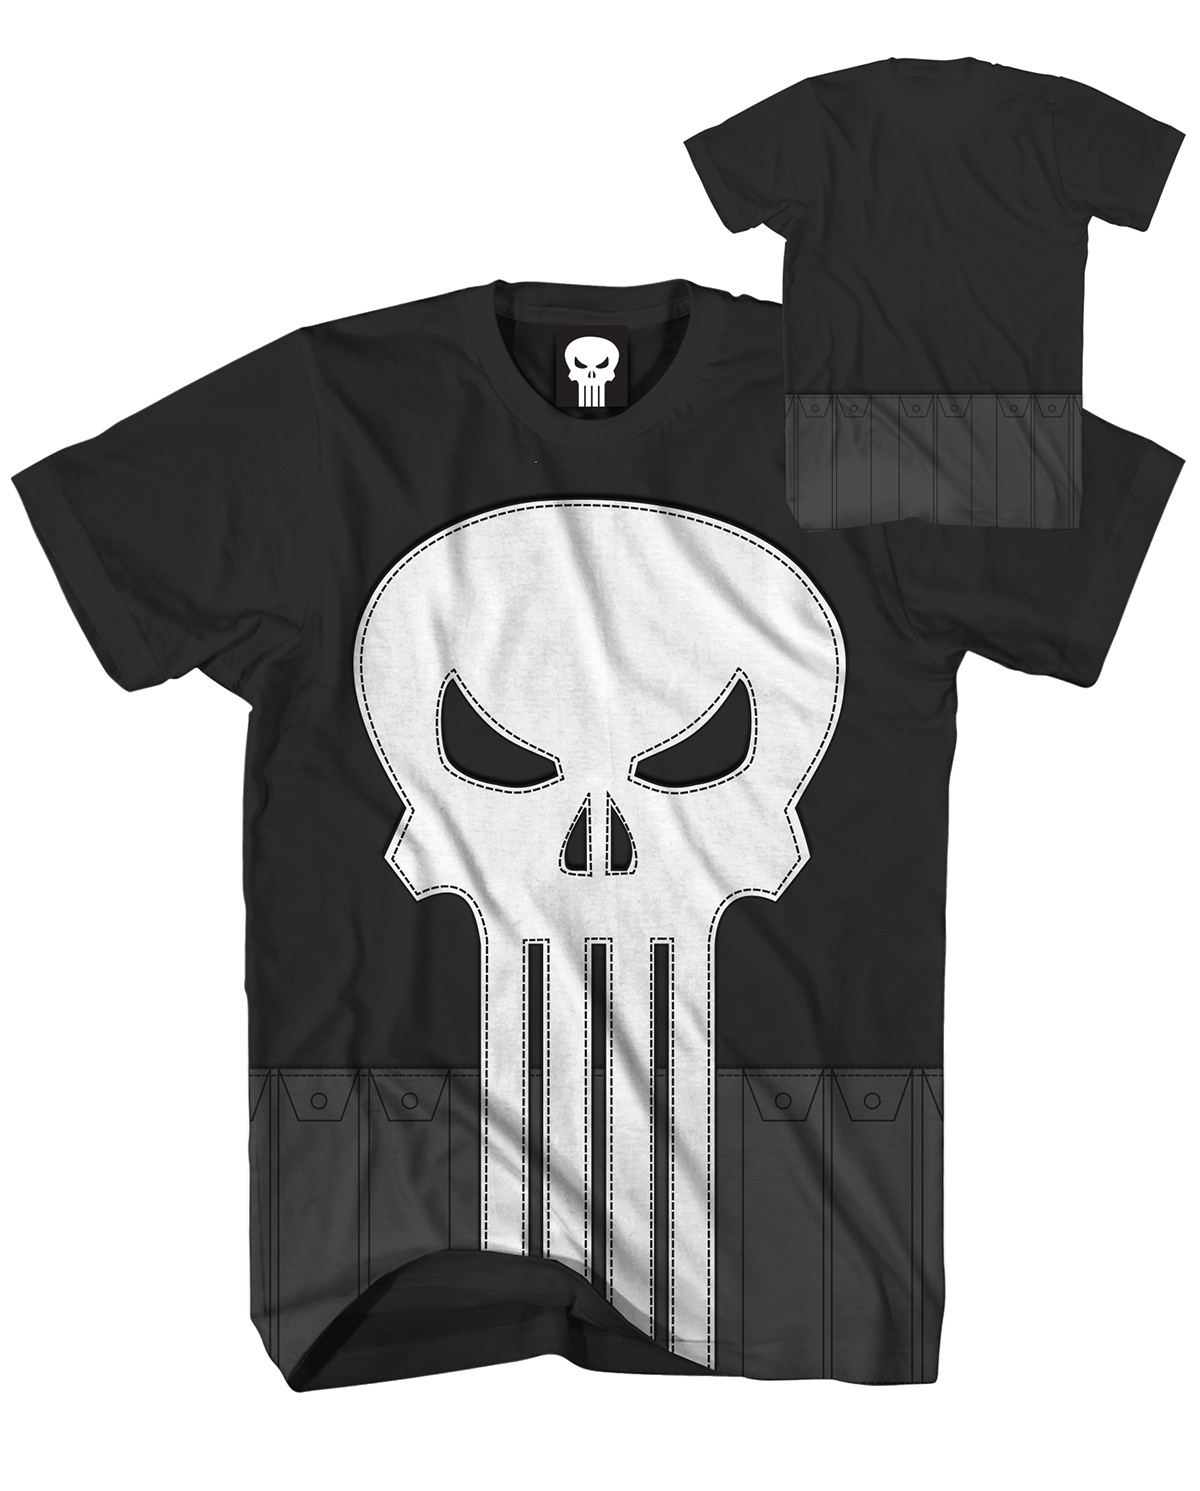 PUNISHER SEWN PUNISHER BLACK T/S MED